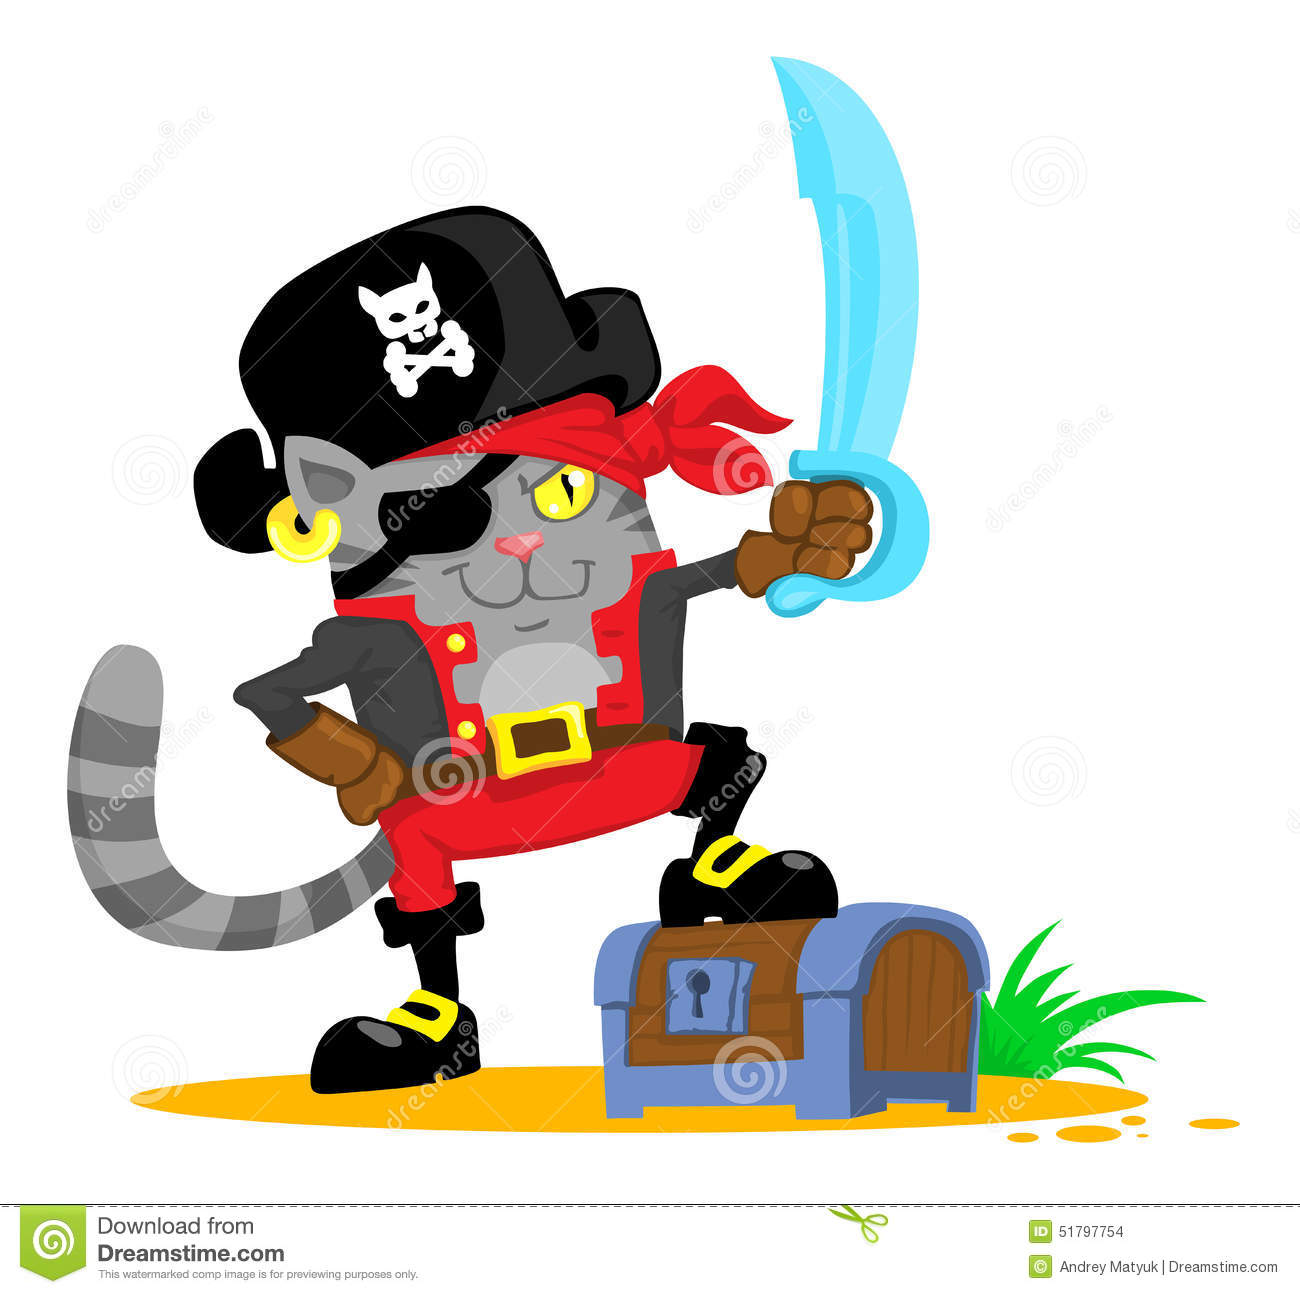 Stock Illustration Cartoon Kids Pirate Ship Sailing Sea Black Flag Sail Decorated Scull Cross Bones Flat Style Vector Image59145700 also 1220 Treasure Chest Plans furthermore Pirate Ship Images likewise Robuste Schatztruhe Holztruhe Truhe besides Dylon Fabric Paint 25ml. on wooden treasure chest